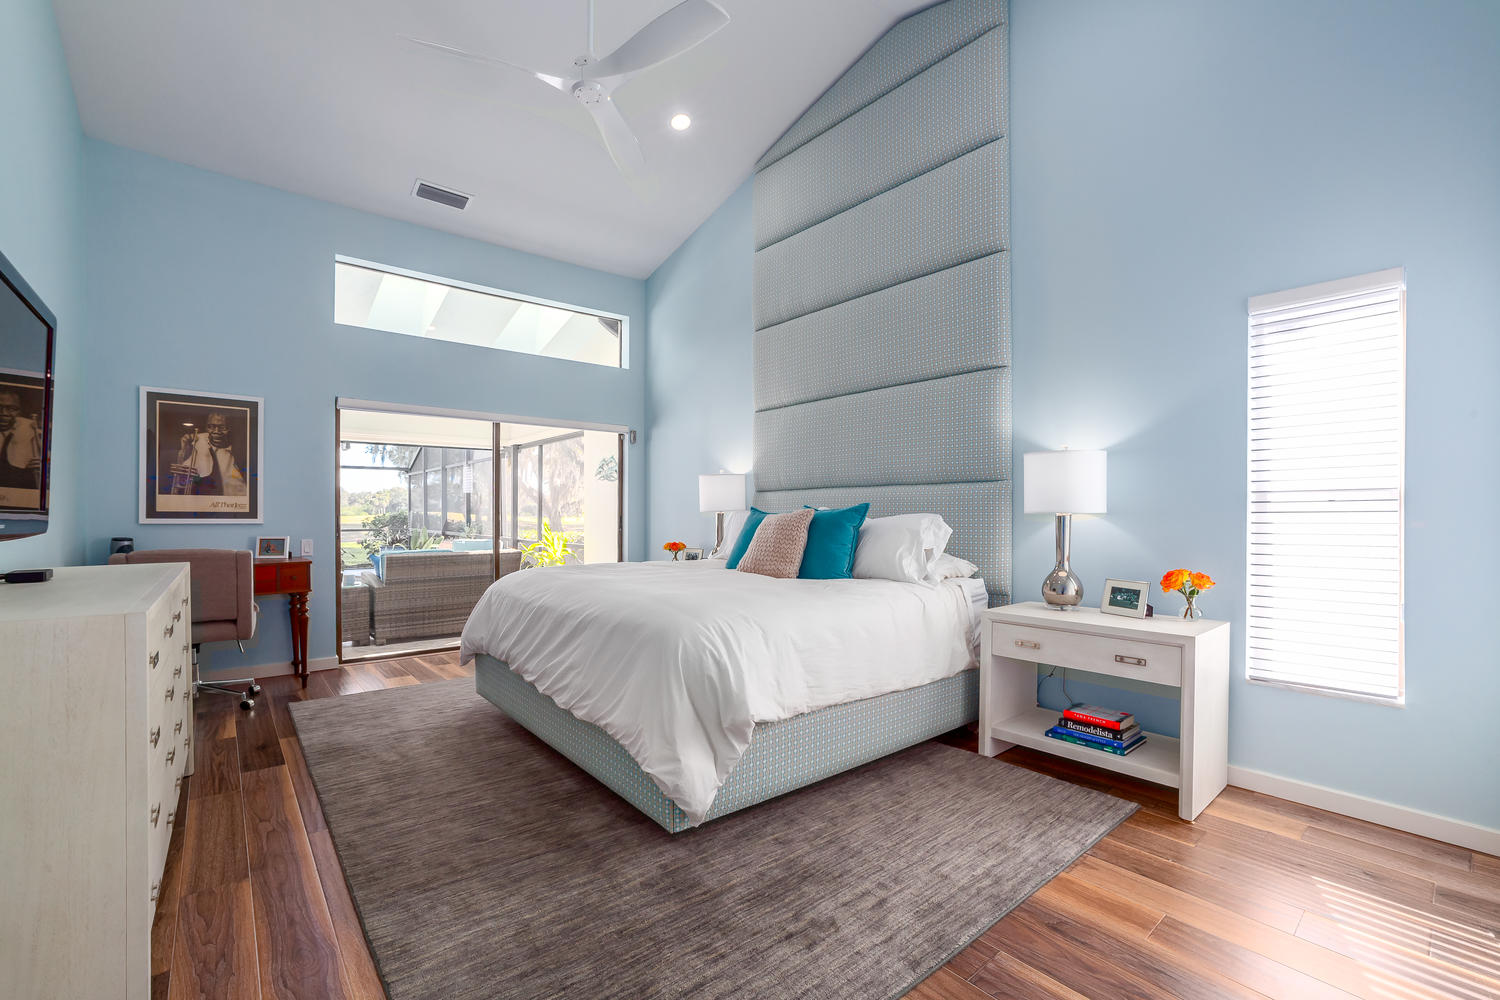 MASTER BEDROOM_INTERIOR DESIGN_SARASOTA COUNTRY CLUB_AFTER